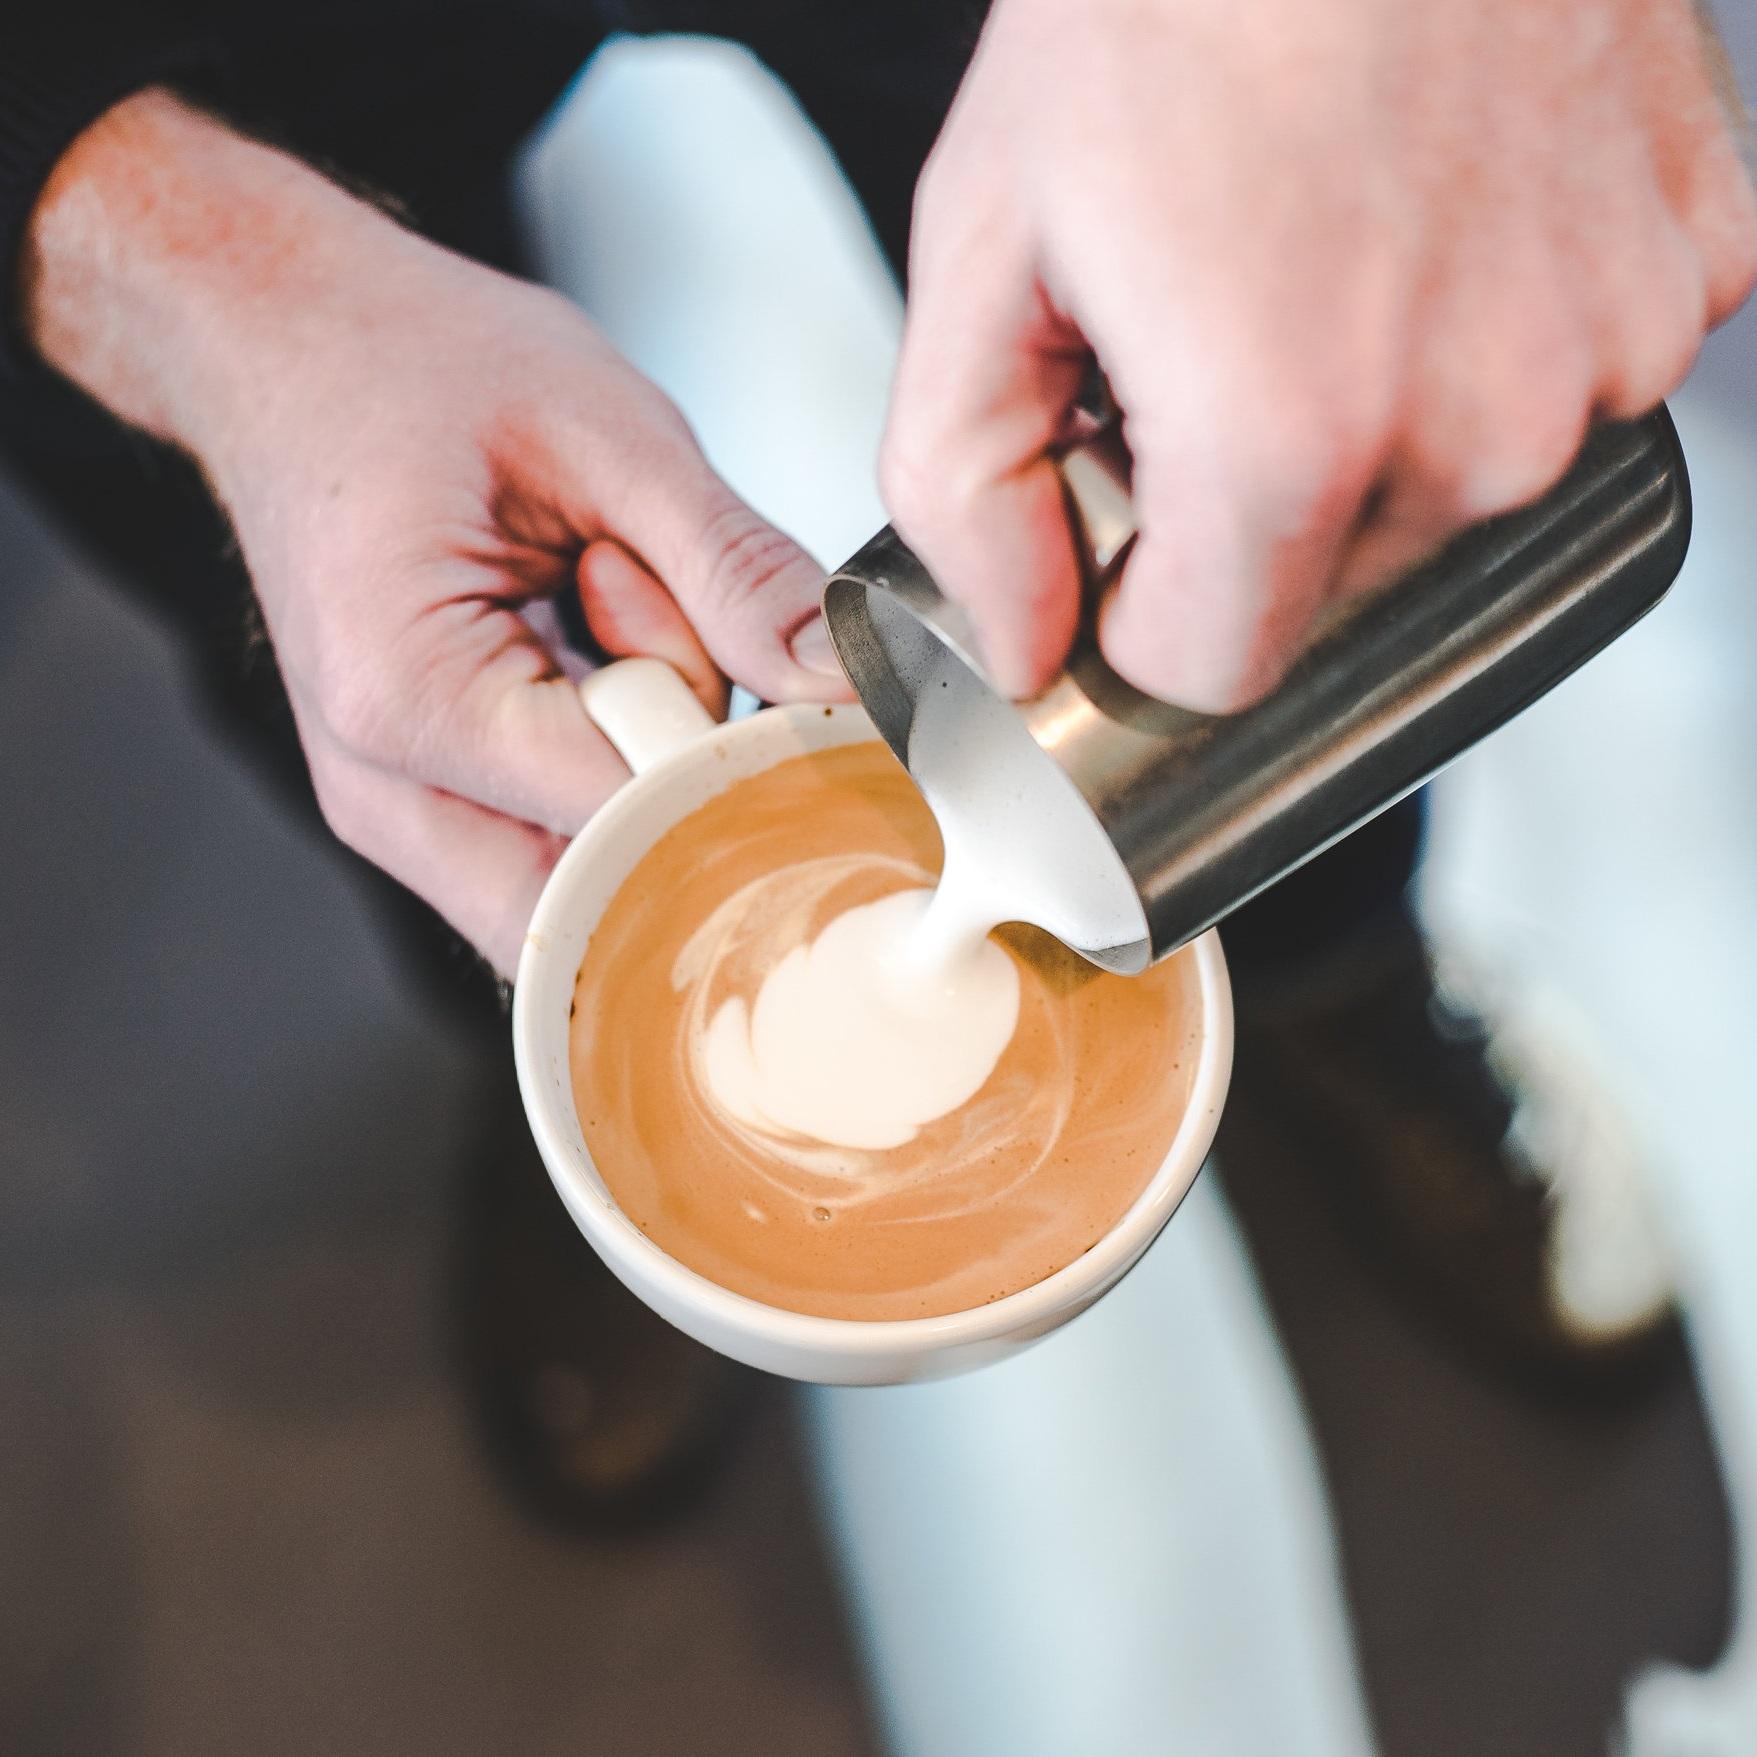 Caffeine has been scientifically proven to have chemically addictive qualities, yet Americans drink it every day. On the other hand, marijuana does not have these effects on us.  -